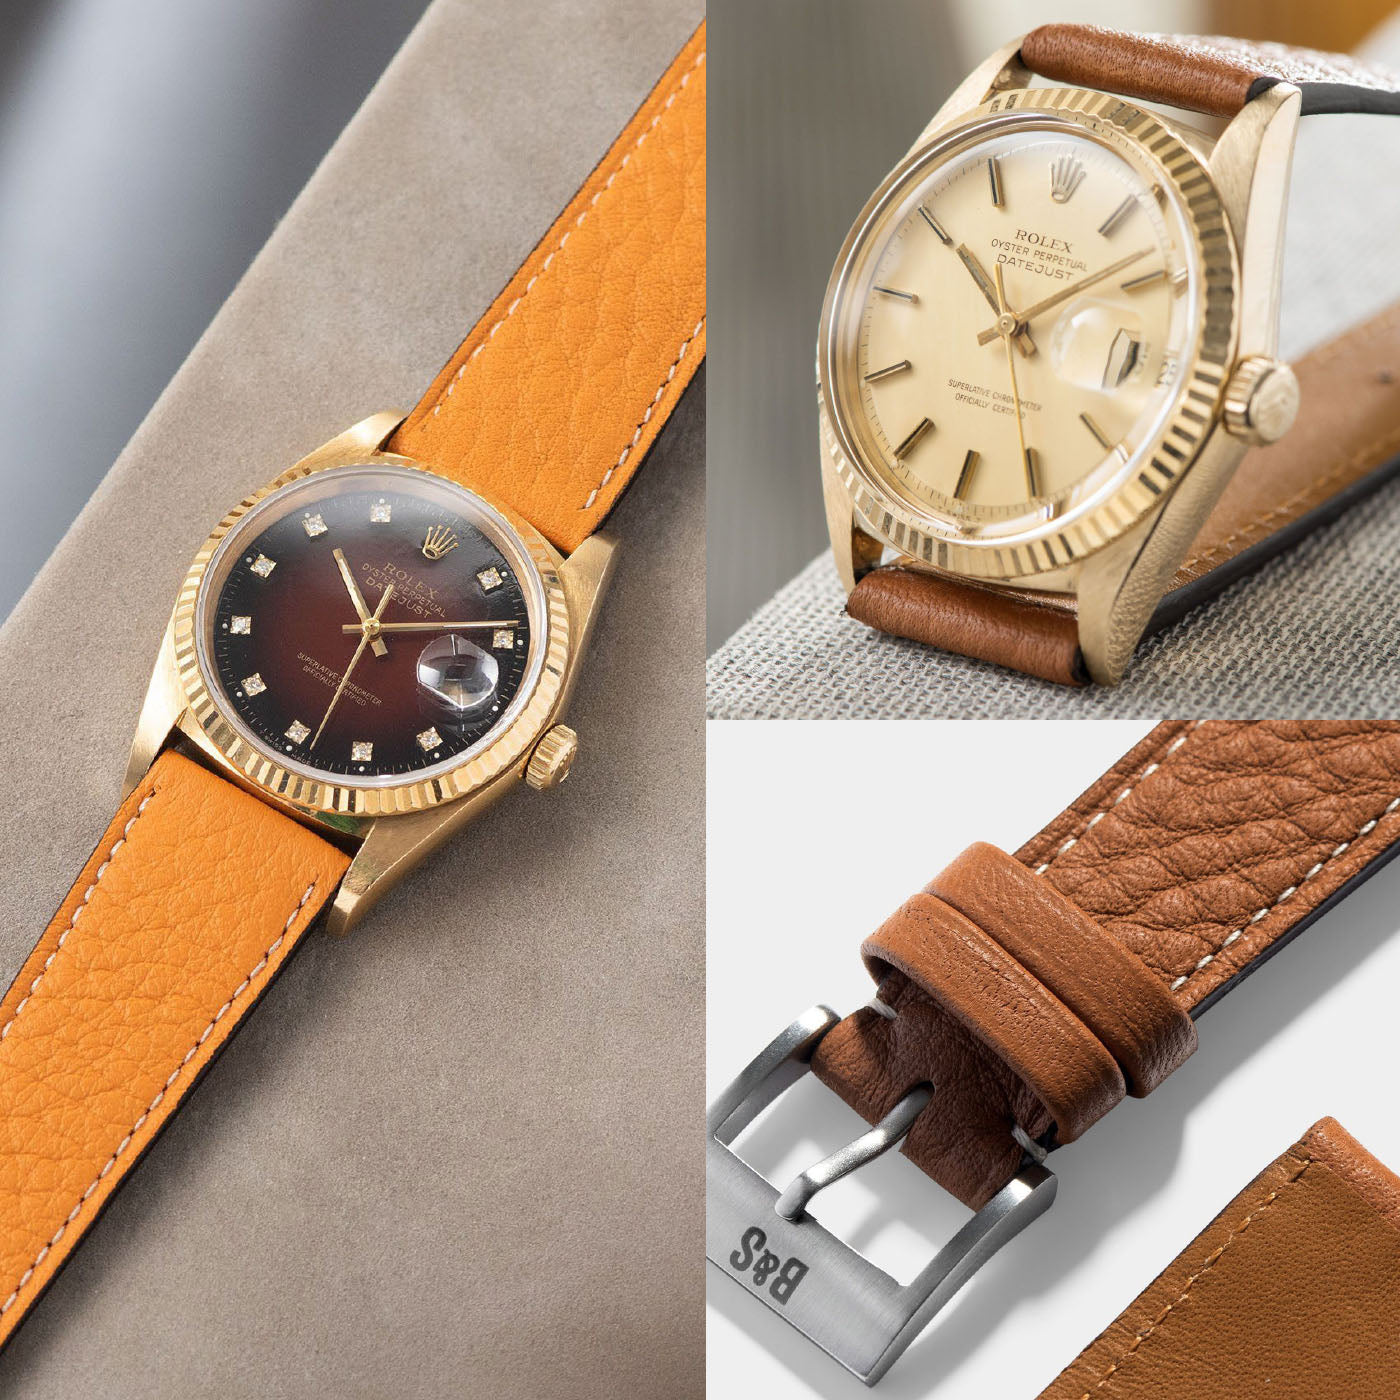 Bulang and Sons Taurillon Strap on Rolex Datejust and Patek Anual Callendar